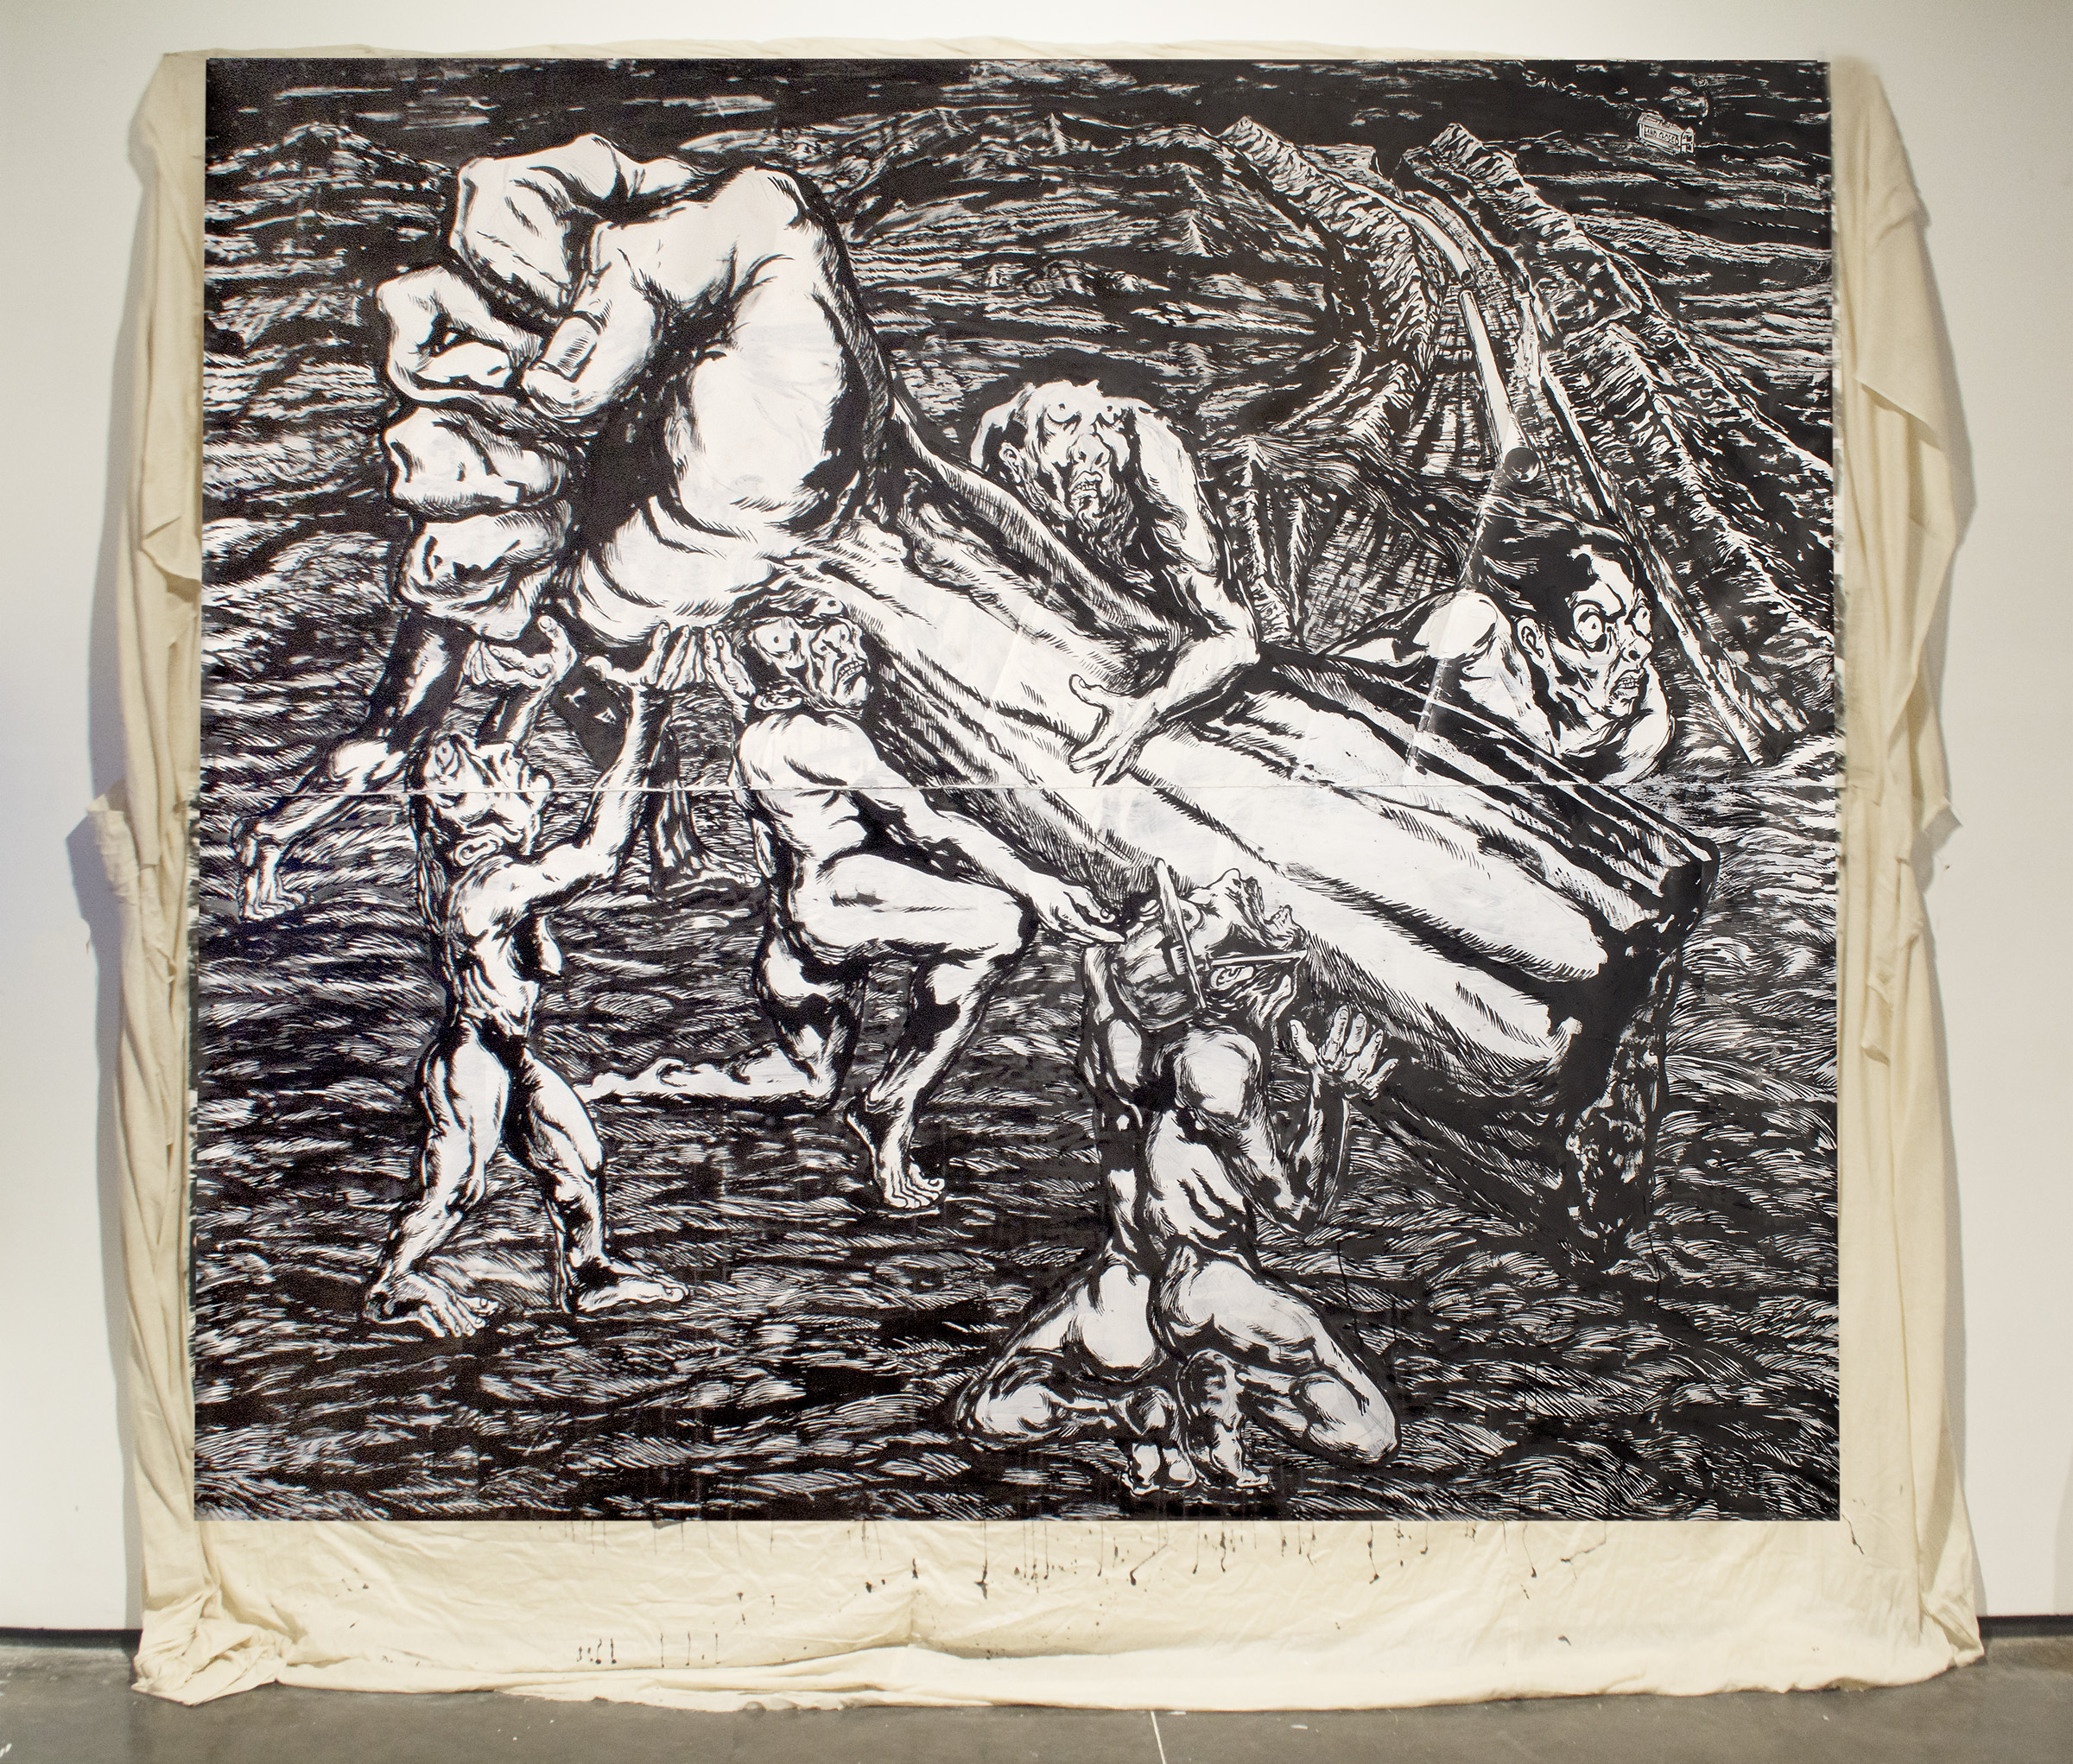 Anupam_roy__From_Resistance_Land__Gallery_Installation_View__Ink_on_paper-350gsm__acid_free__hot-press__pasted_on_cotton_cloth__120_x_156_inches__2018.jpg